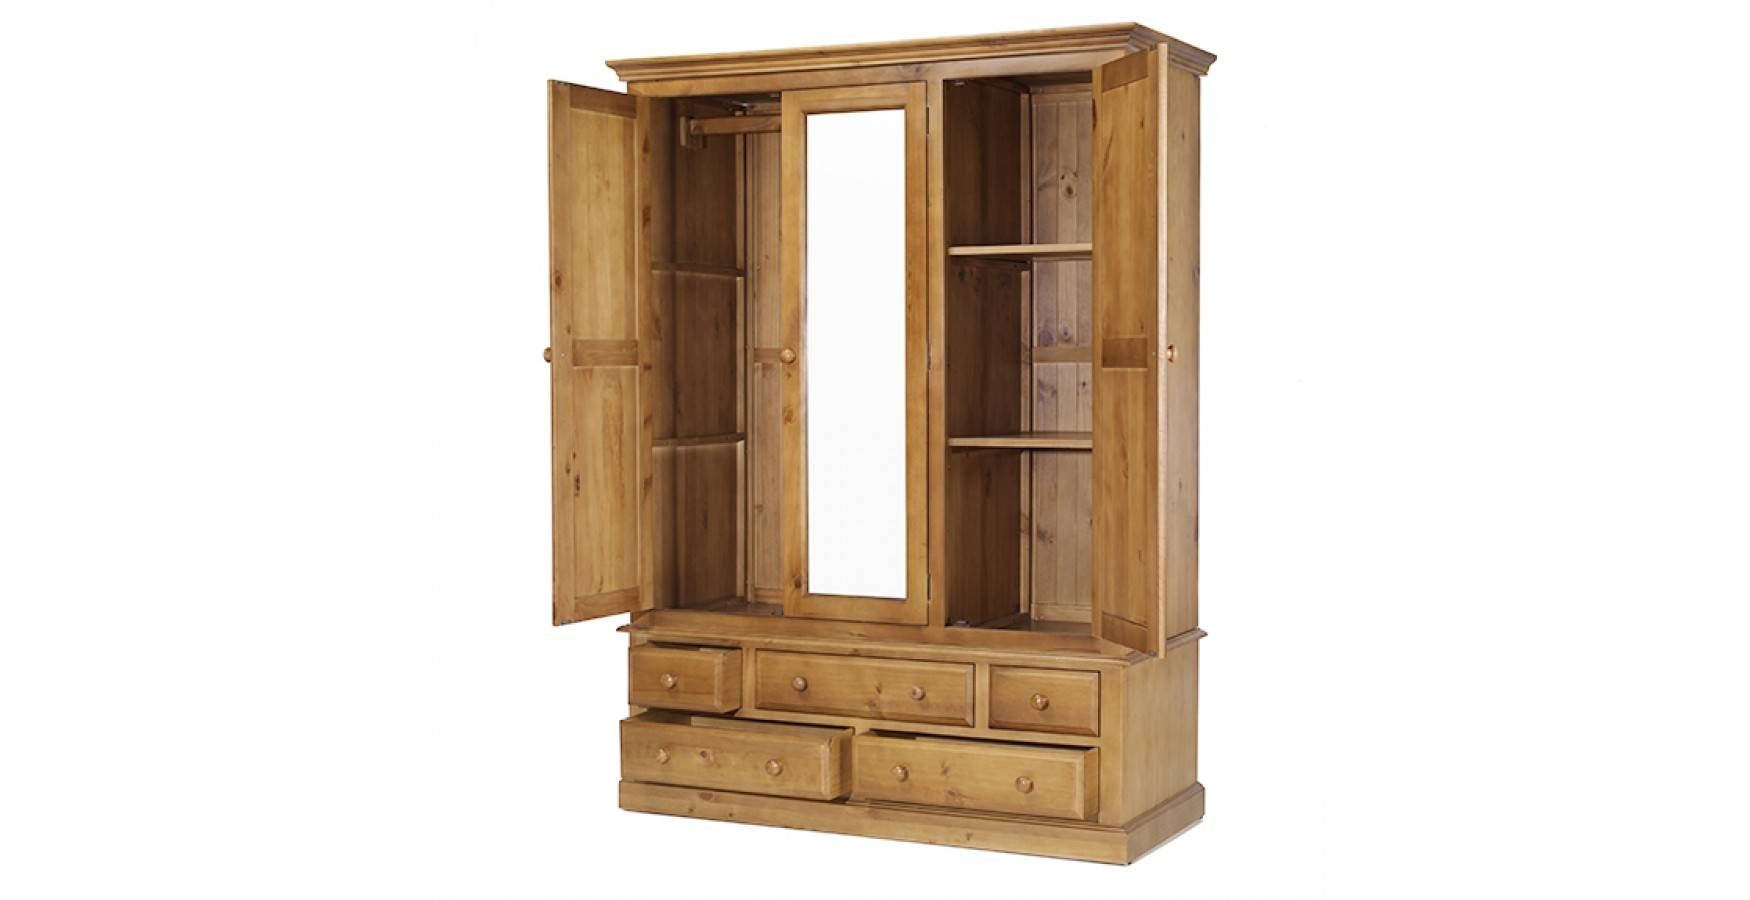 Country Pine Triple Wardrobe With Drawers - Lifestyle Furniture Uk within Pine Wardrobe With Drawers and Shelves (Image 10 of 30)